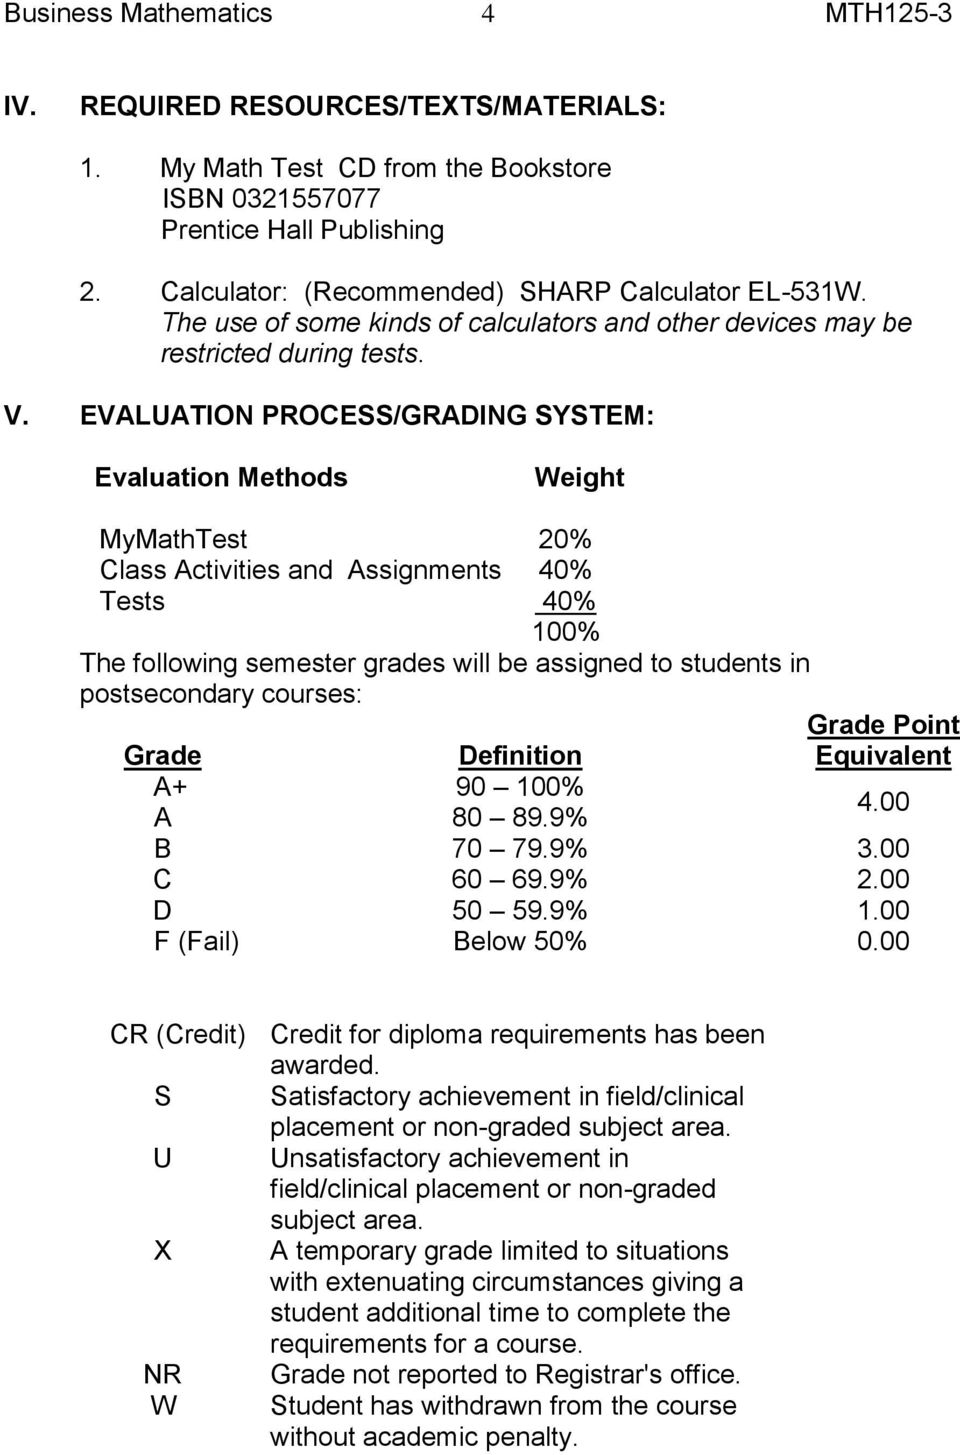 EVALUATION PROCESS/GRADING SYSTEM: Evaluation Methods Weight MyMathTest 20% Class Activities and Assignments 40% Tests 40% 100% The following semester grades will be assigned to students in